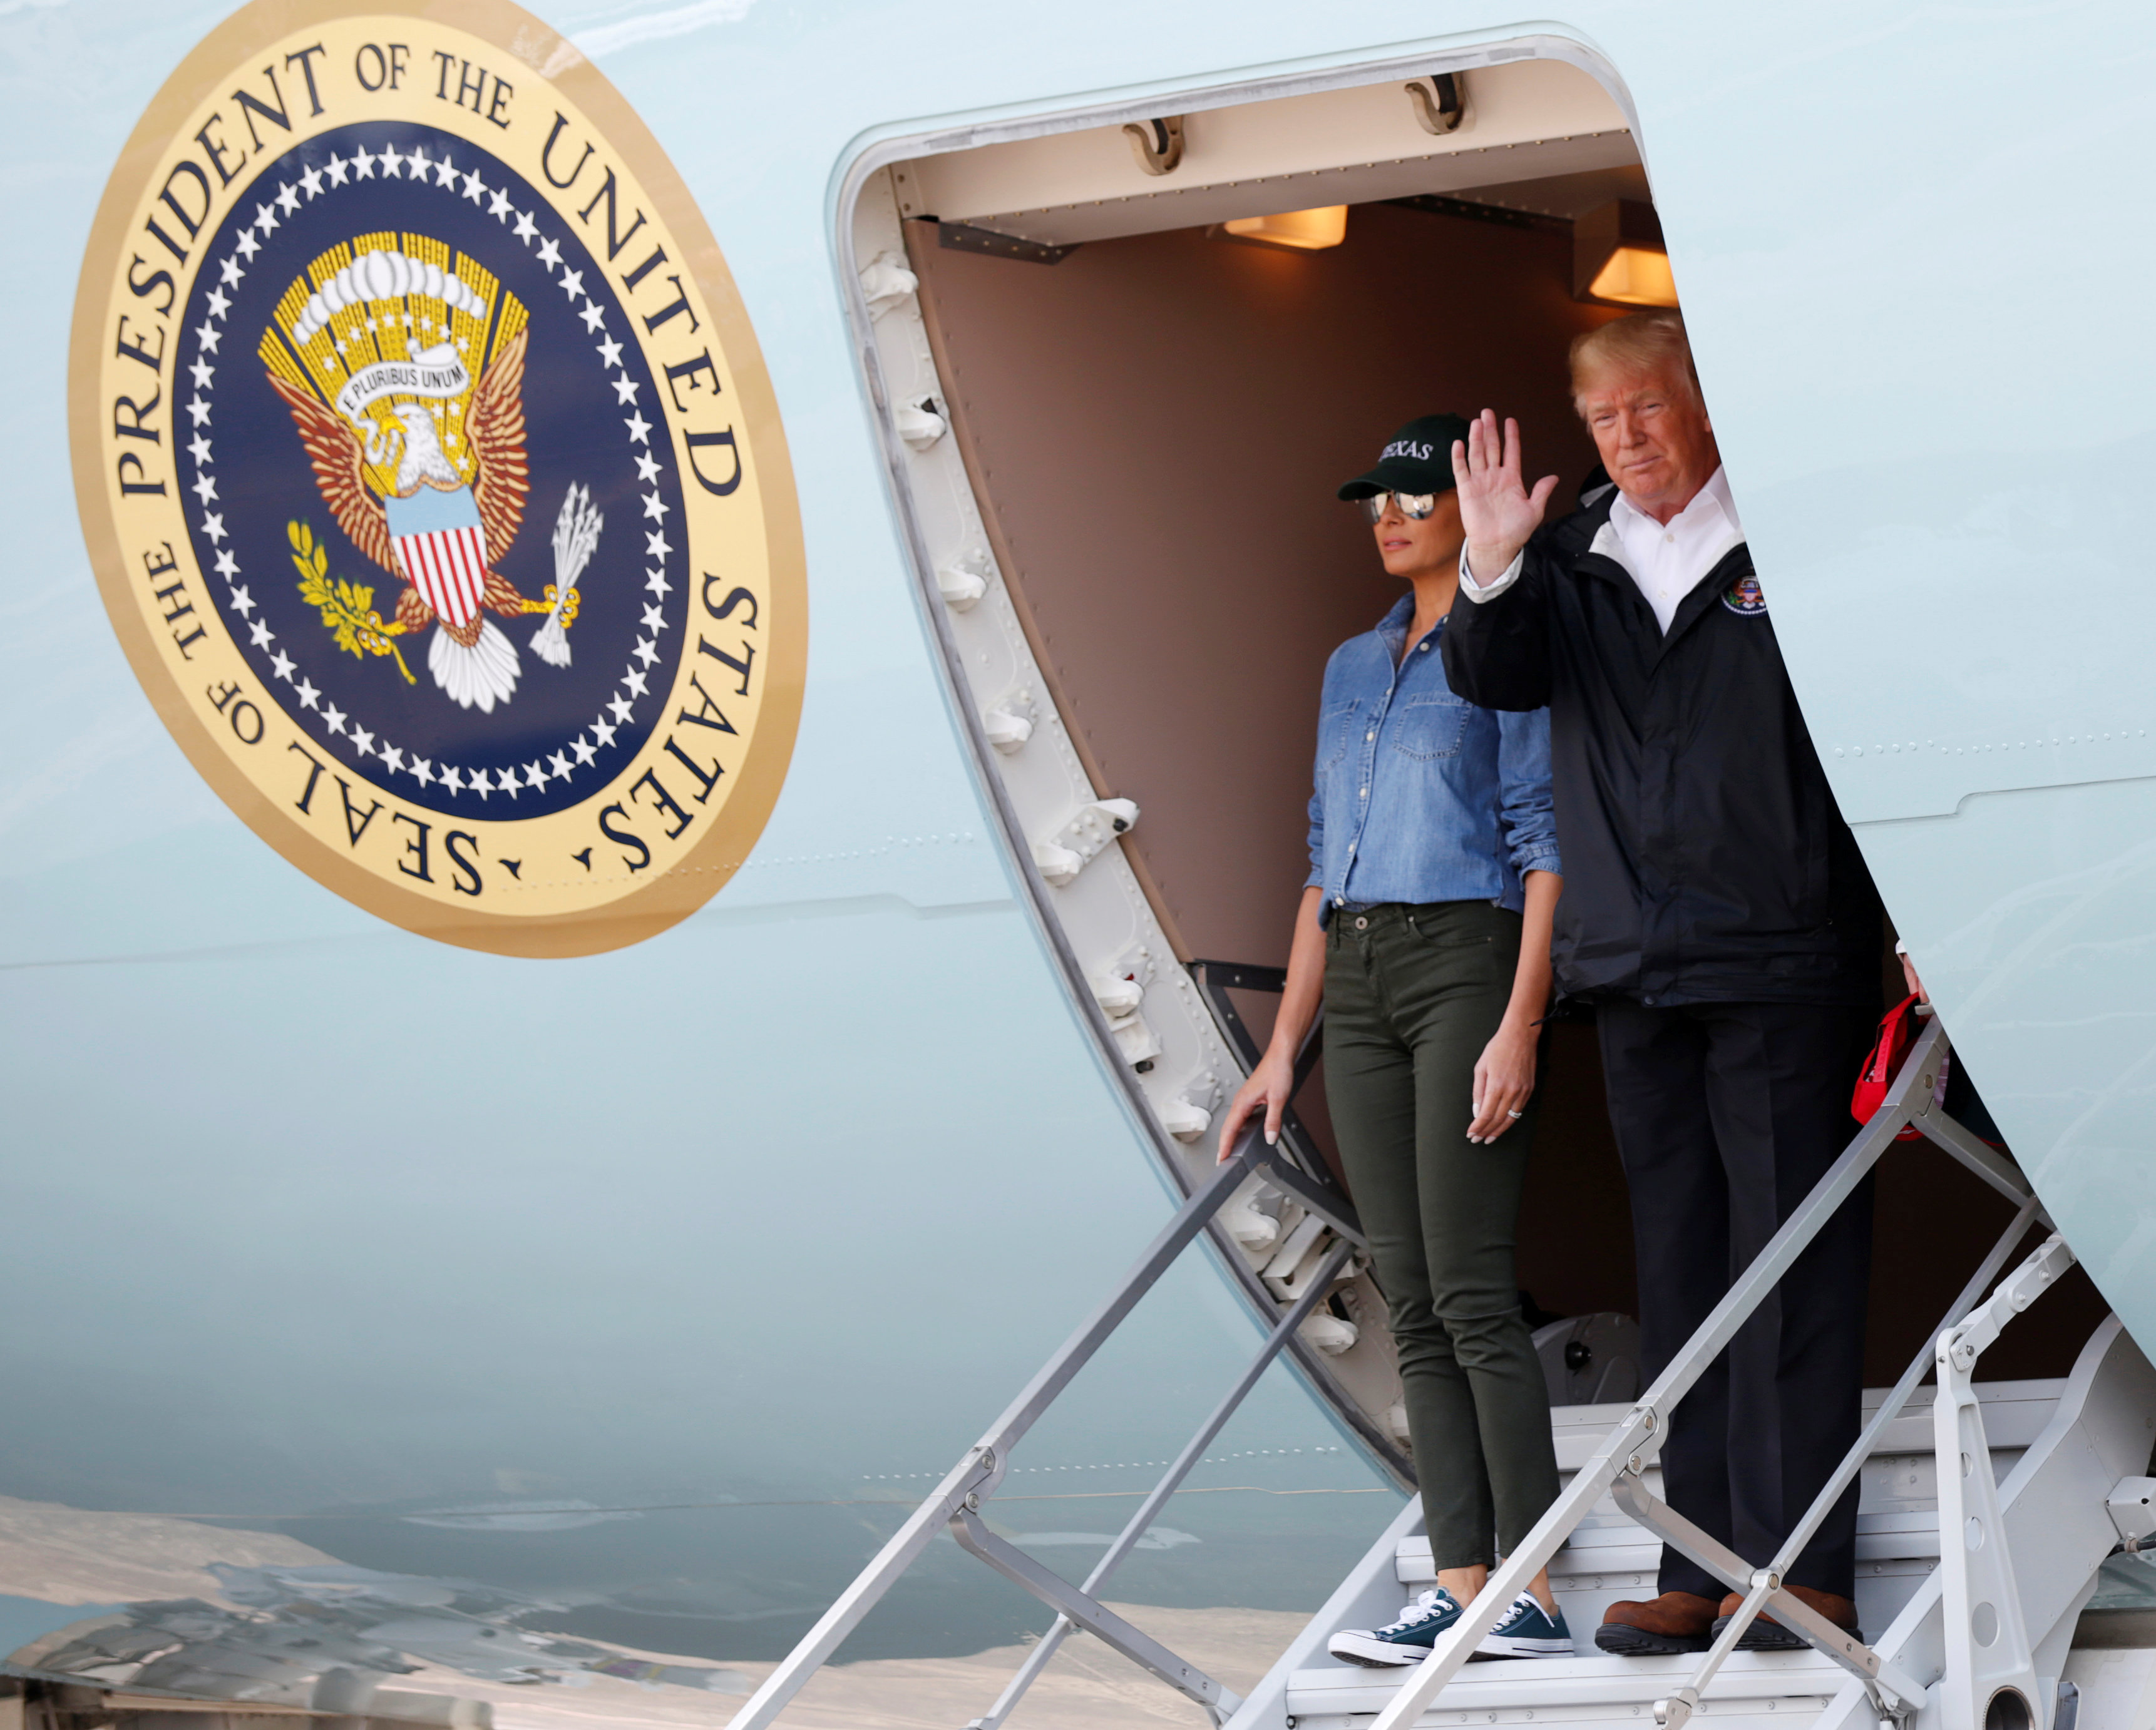 U.S. President Donald Trump and first lady Melania Trump wave from Air Force One after arriving at Ellington Field to meet with flood survivors and volunteers who assisted in relief efforts in the aftermath of Hurricane Harvey, in Houston, Texas, U.S., September 2, 2017.   REUTERS/Kevin Lamarque